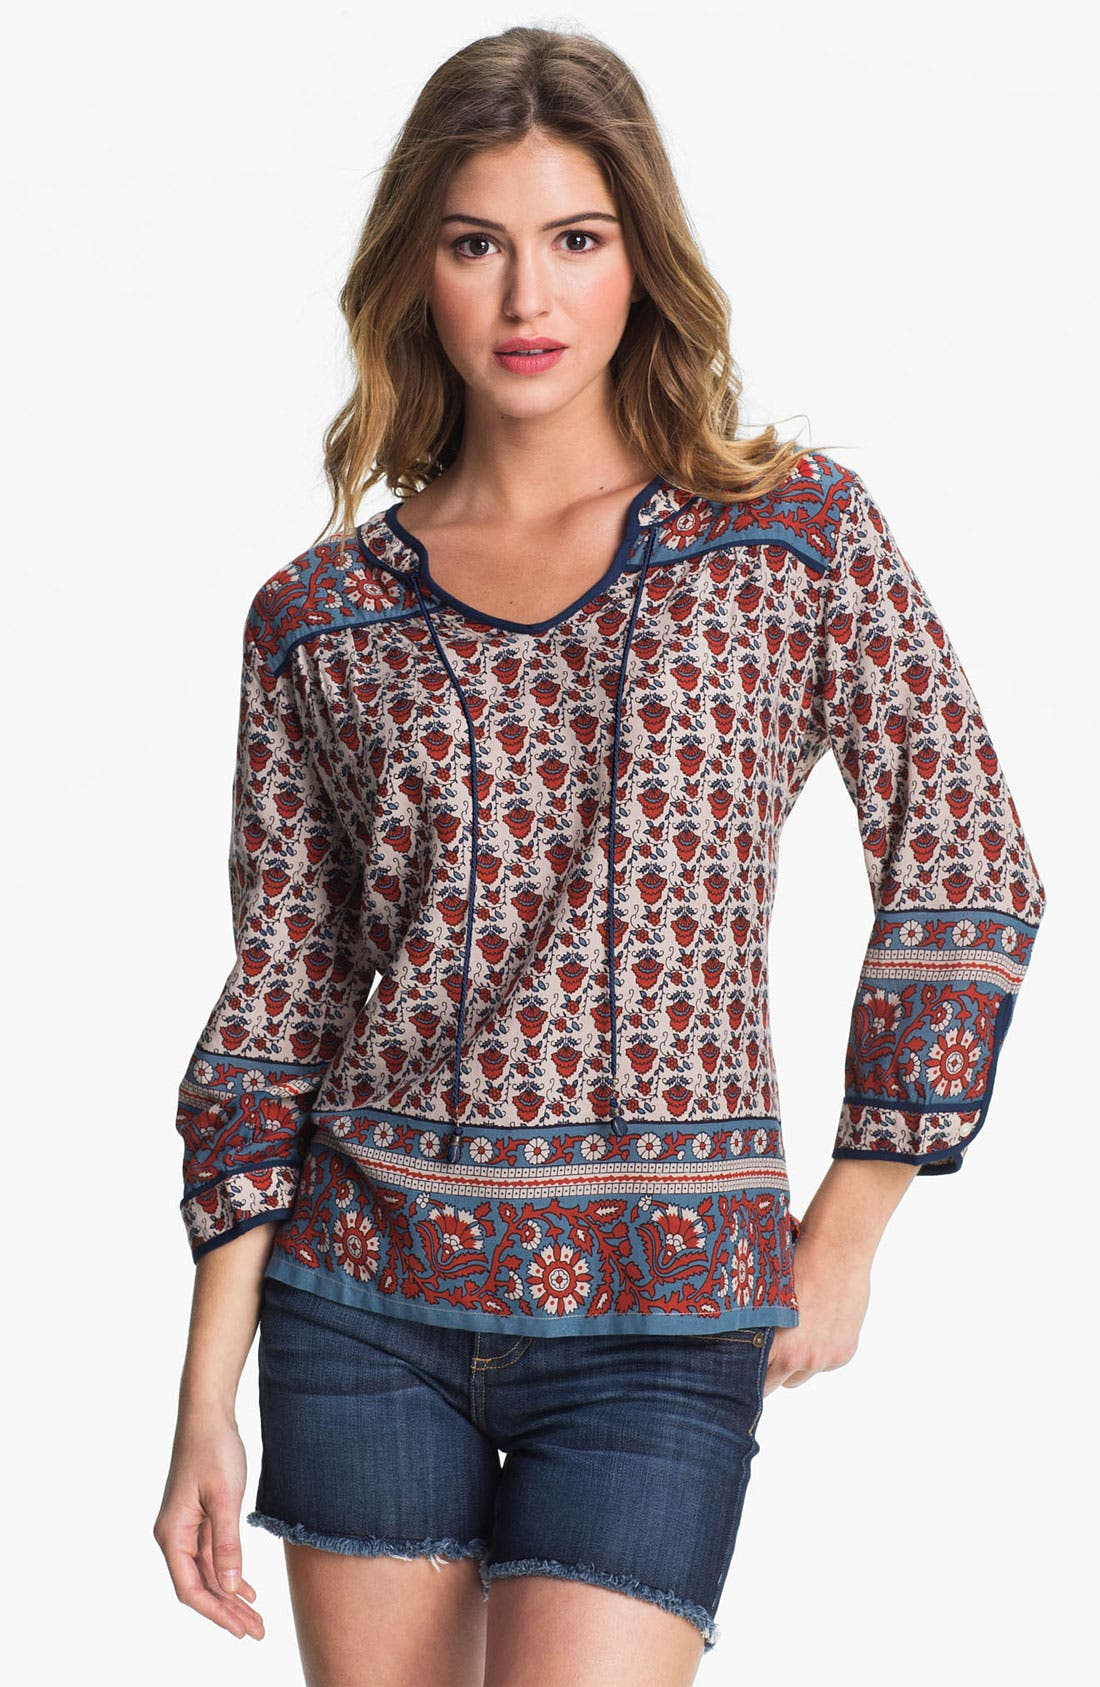 Alternate Image 1 Selected - Lucky Brand 'Betton - Indian Gate Border' Top